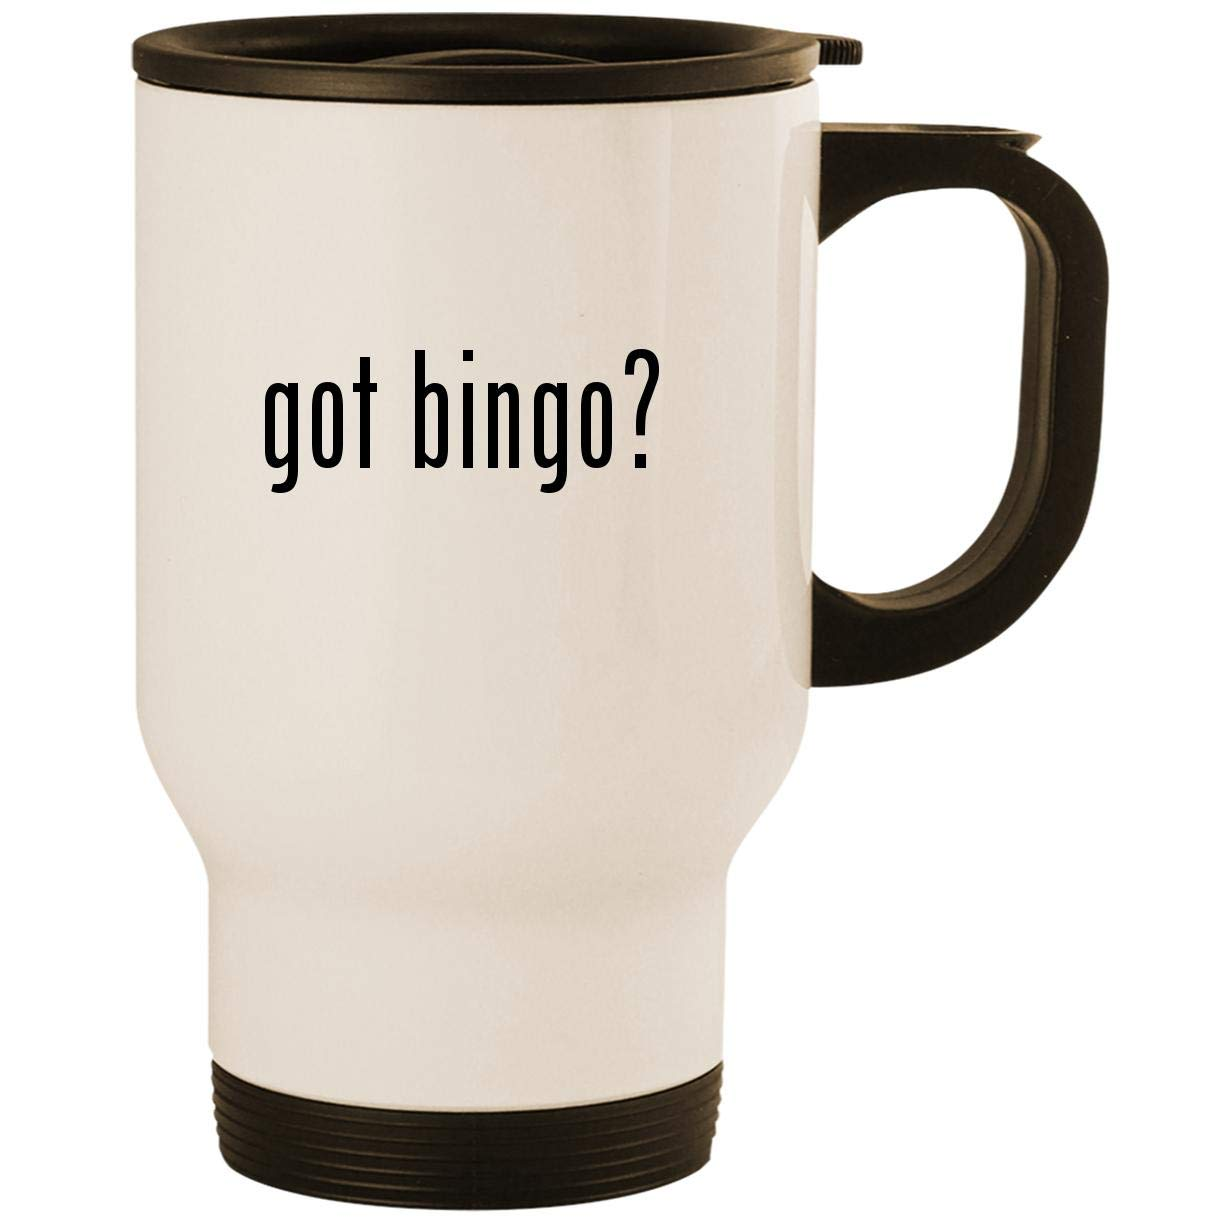 got bingo? - Stainless Steel 14oz Road Ready Travel Mug, White by Molandra Products